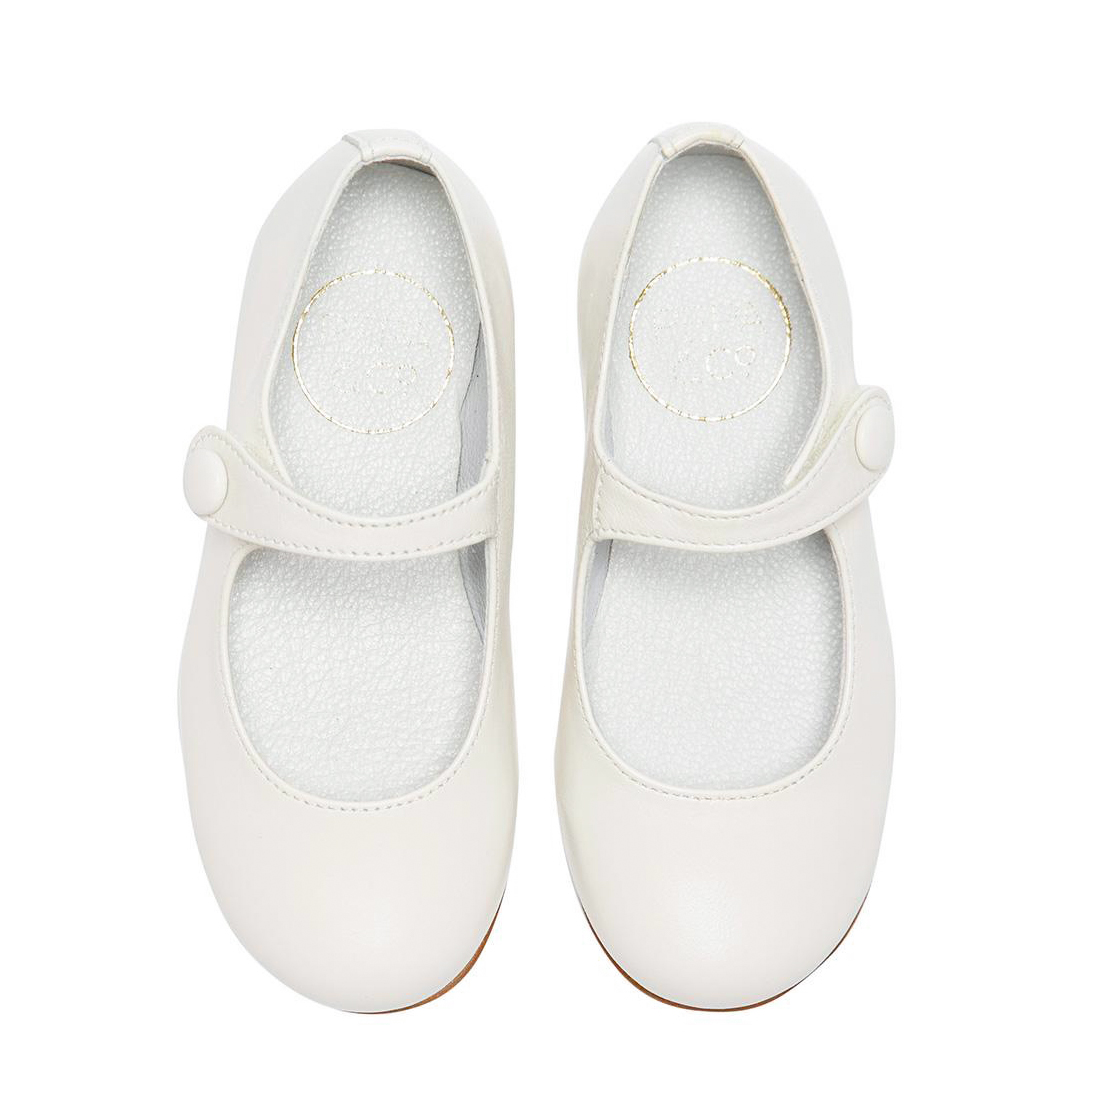 flower girl white leather shoes button strap